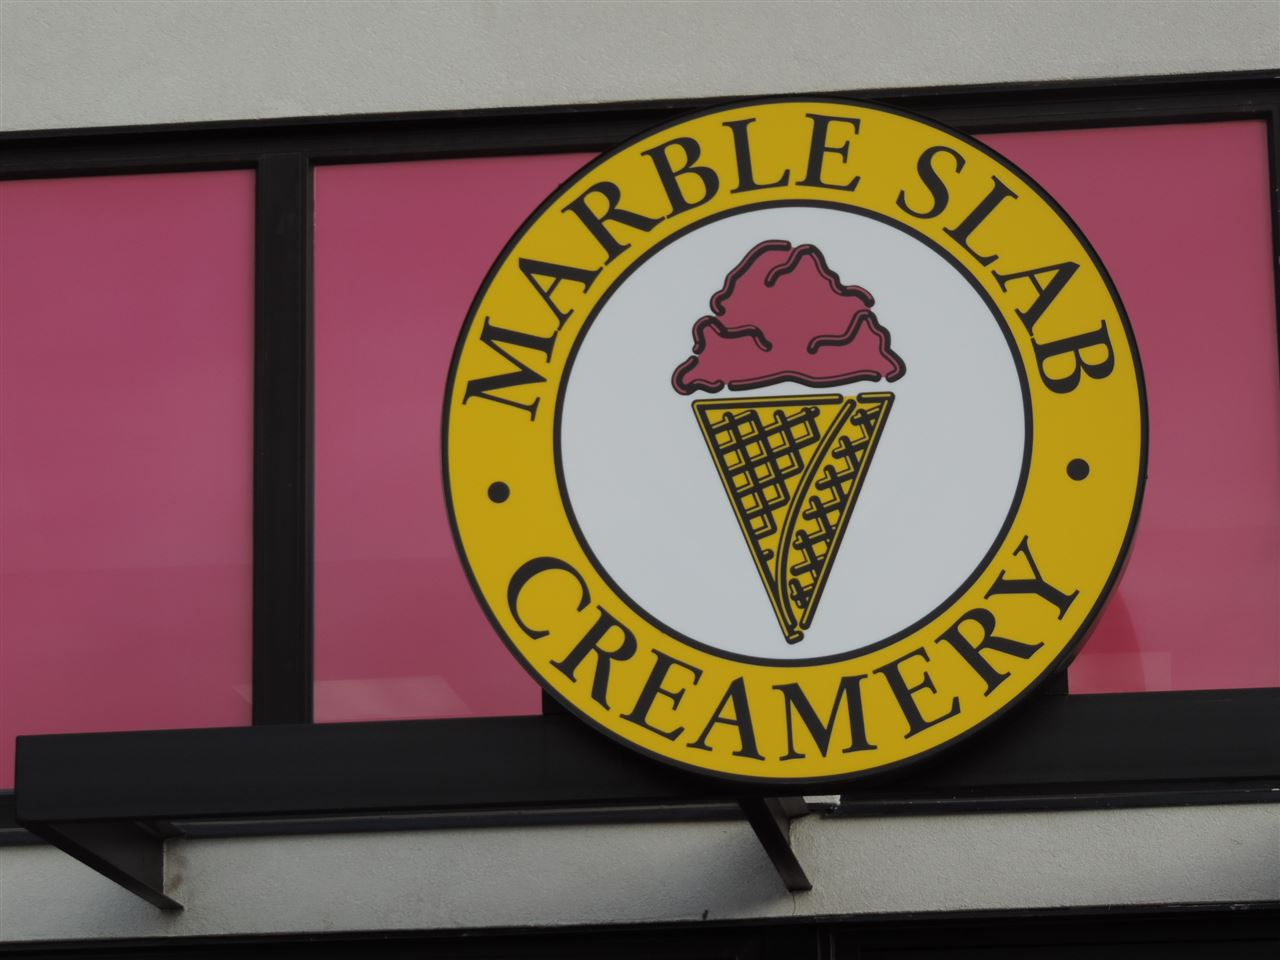 Already established, well known franchise! Looking to be your own BOSS? Then you will LOVE this EXCITING BUSINESS OPPORTUNITY! This Marble Slab Creamery is located in a very busy, high traffic location, and has a beautiful, already-established store, plus has established a great clientele, but also has HUGE potential for even more growth! If you've ever wanted to own your own business, then this opportunity may be for you, you will be a part of something BIG within this fast growing municipality! please inquire for more details!